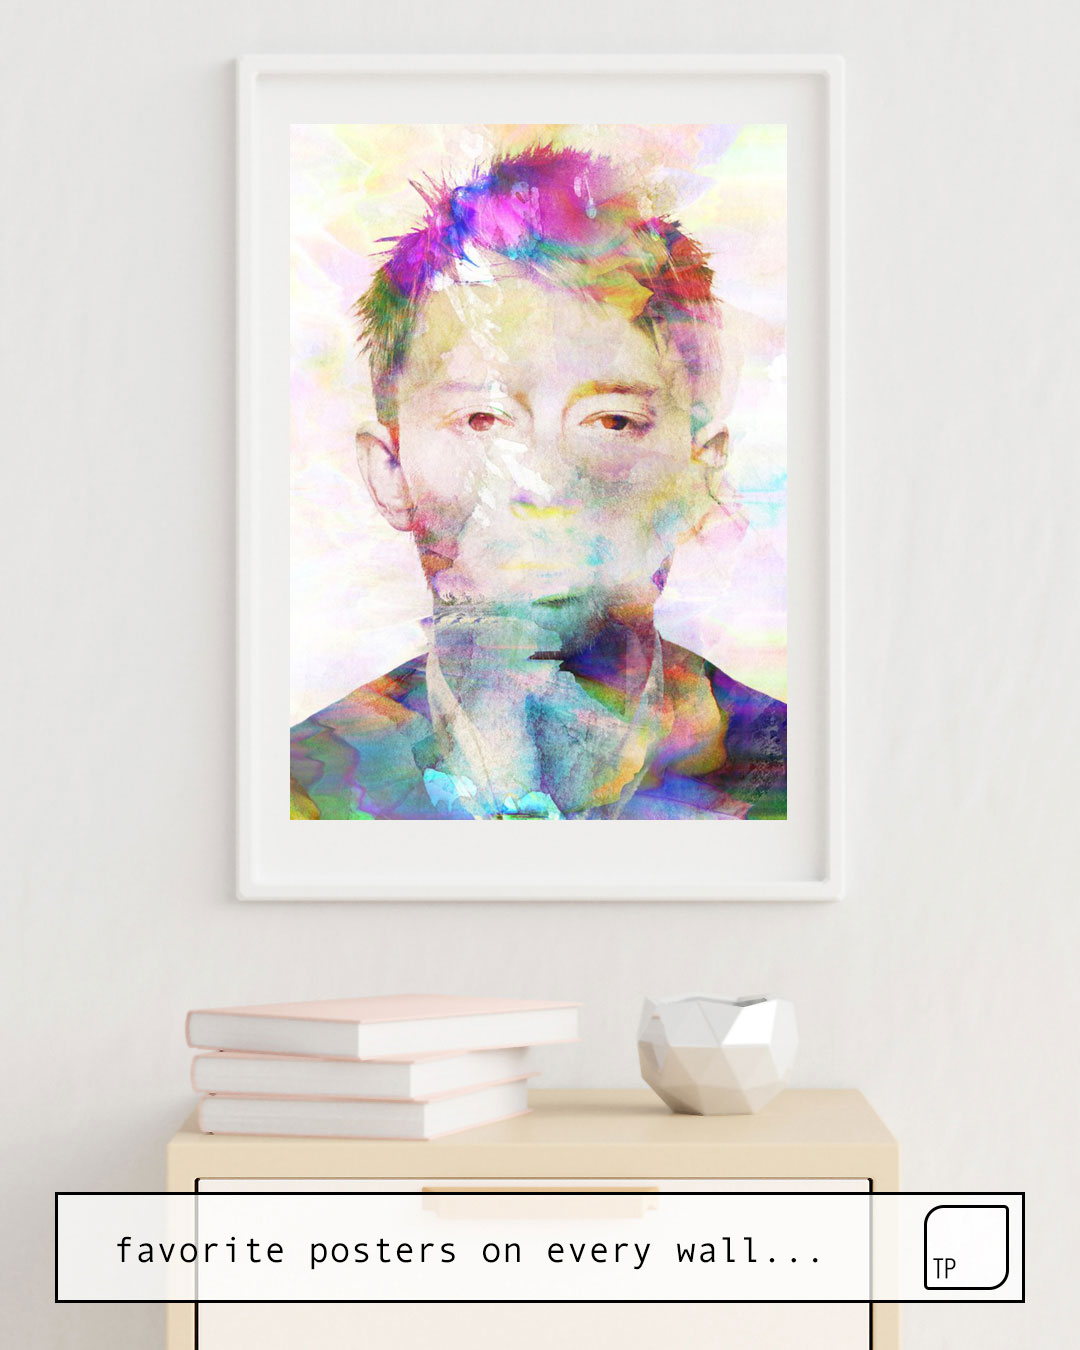 The photo shows an example of furnishing with the motif THOM YORKE by Andreas Lie as mural